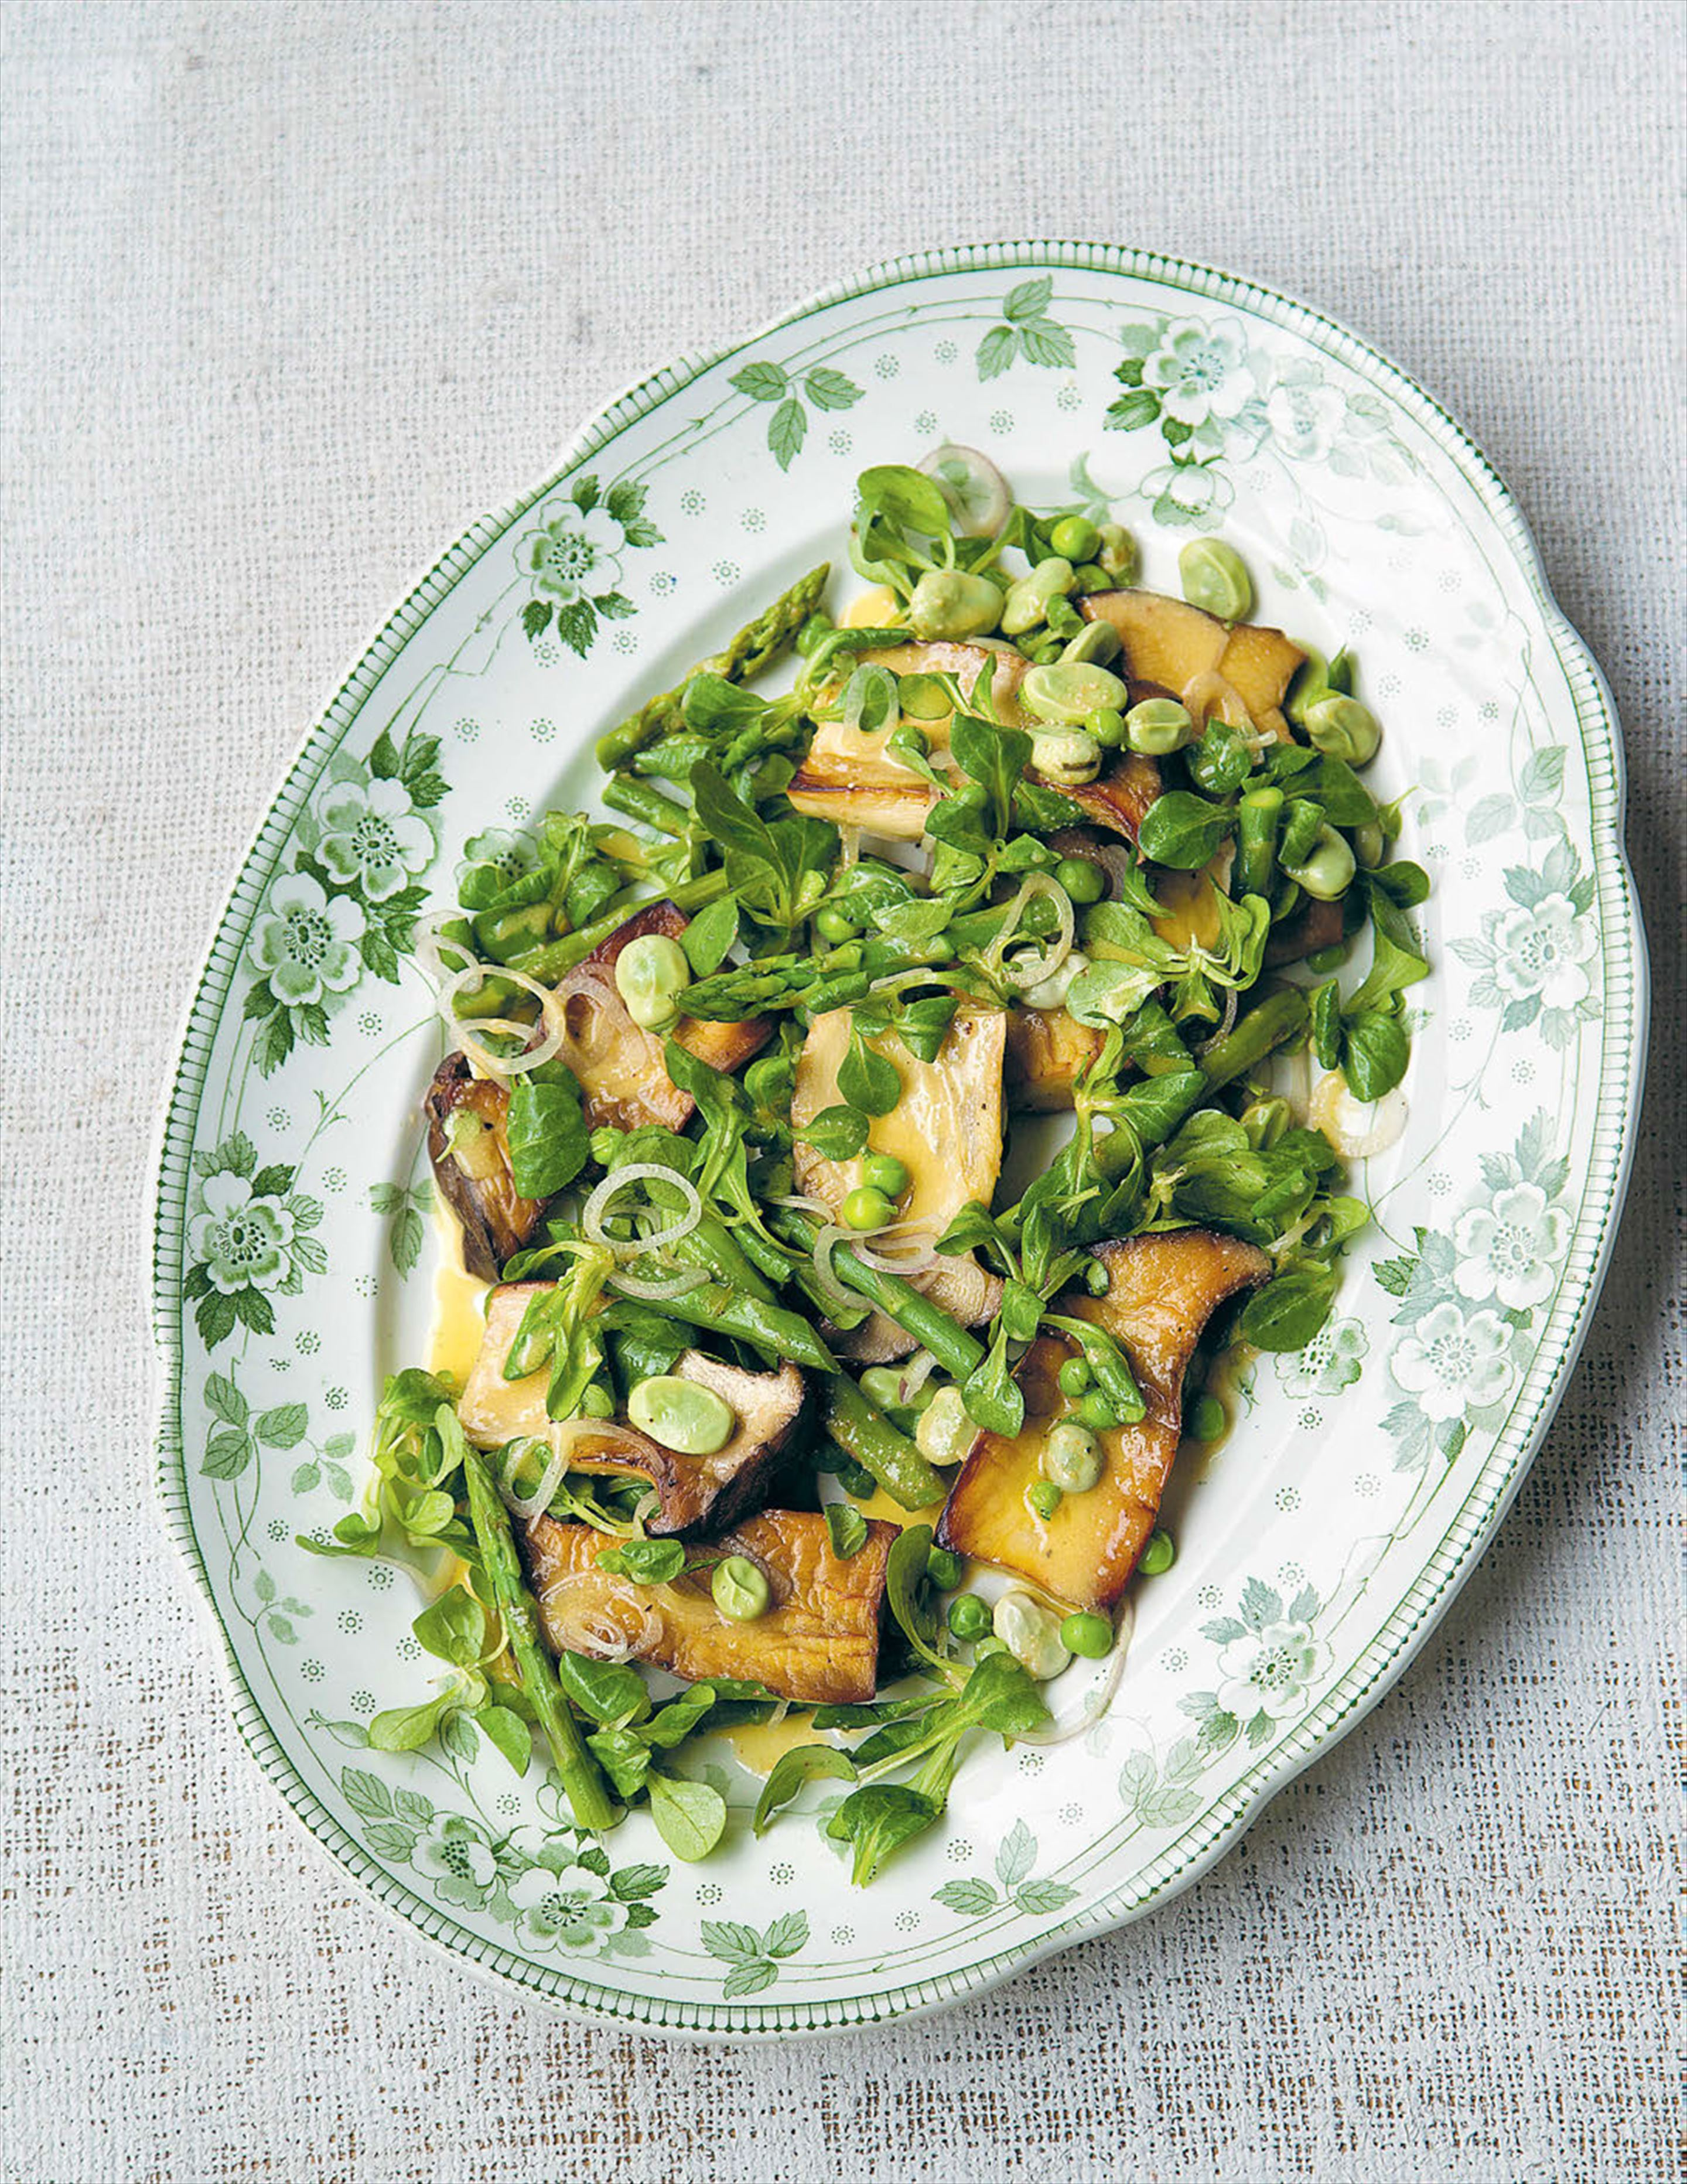 Warm salad of king brown mushrooms, asparagus and broad beans